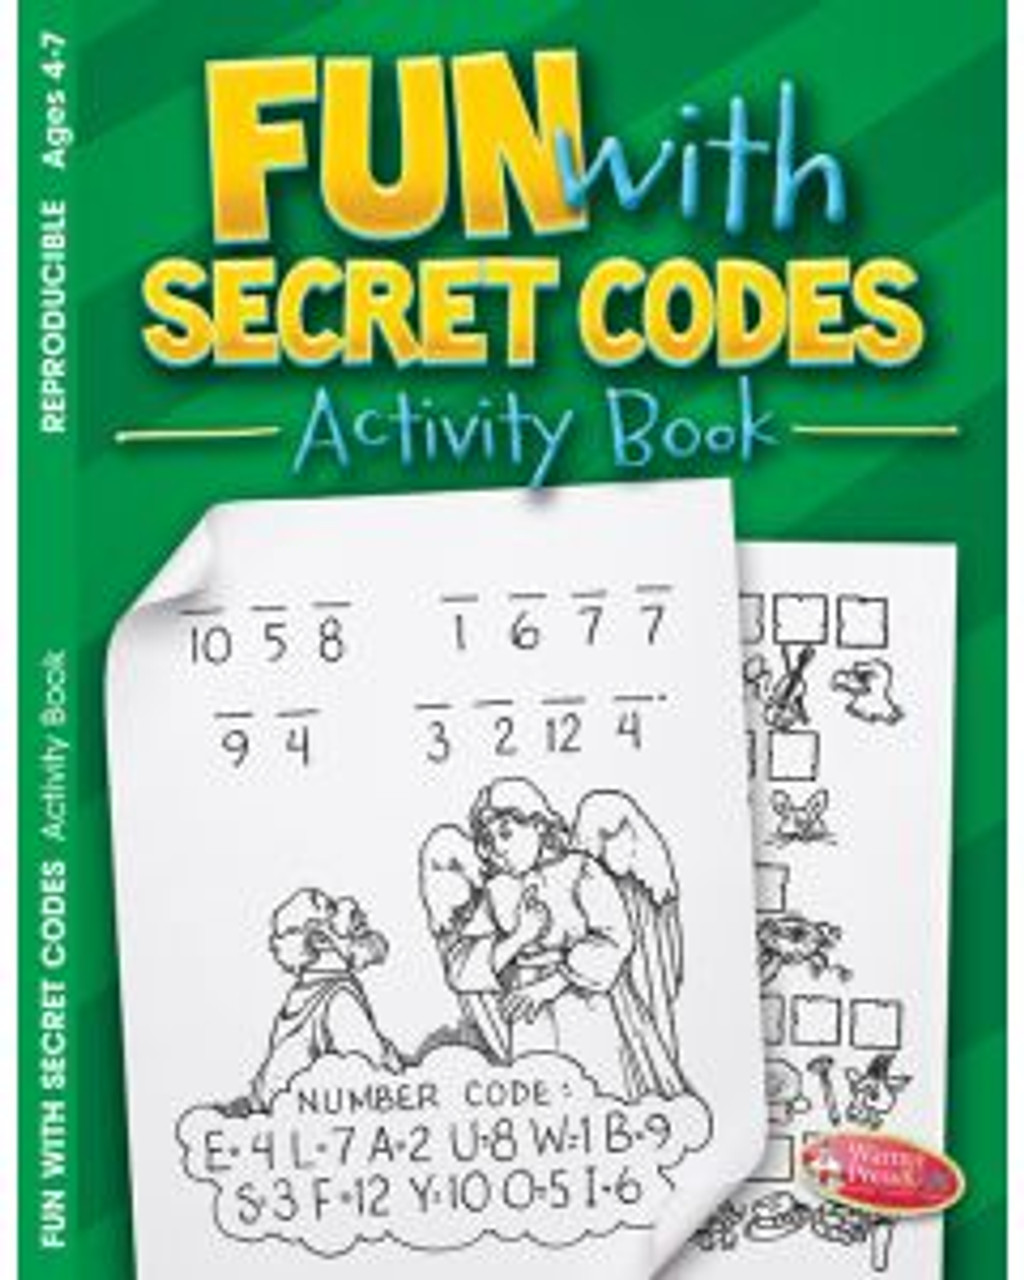 Fun With Secret Codes (activity book)